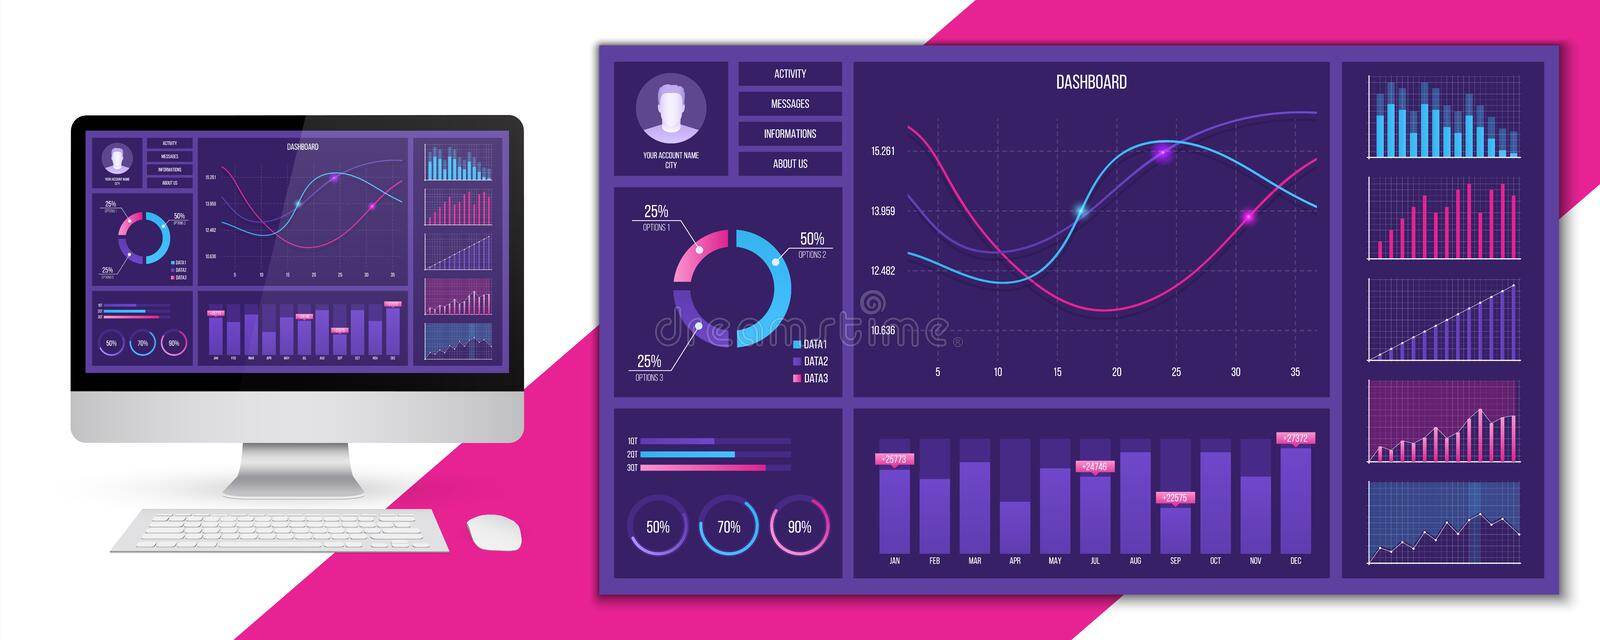 Creative vector illustration of web dashboard infographic template. Art design annual statistics graphs. Abstract royalty free illustration